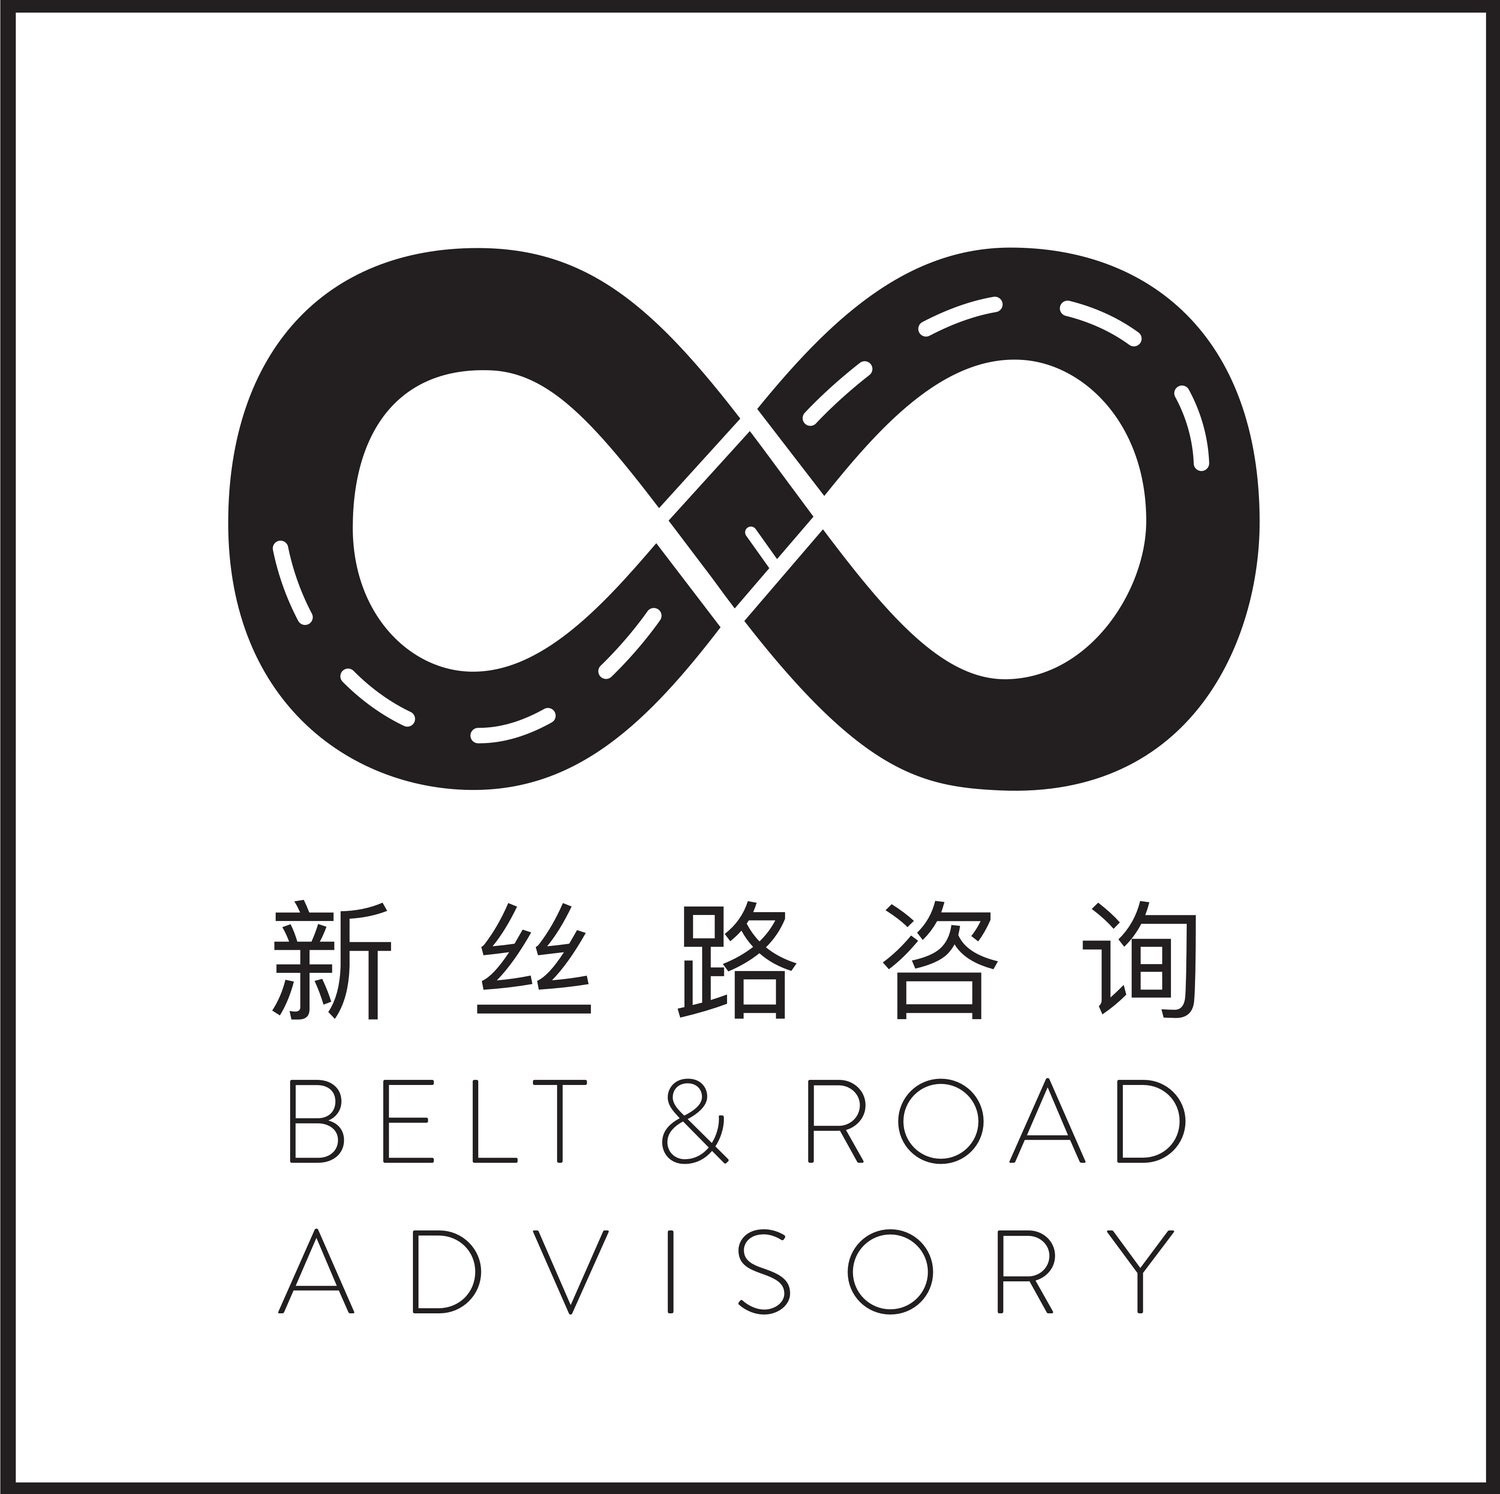 Belt and Road Advisory